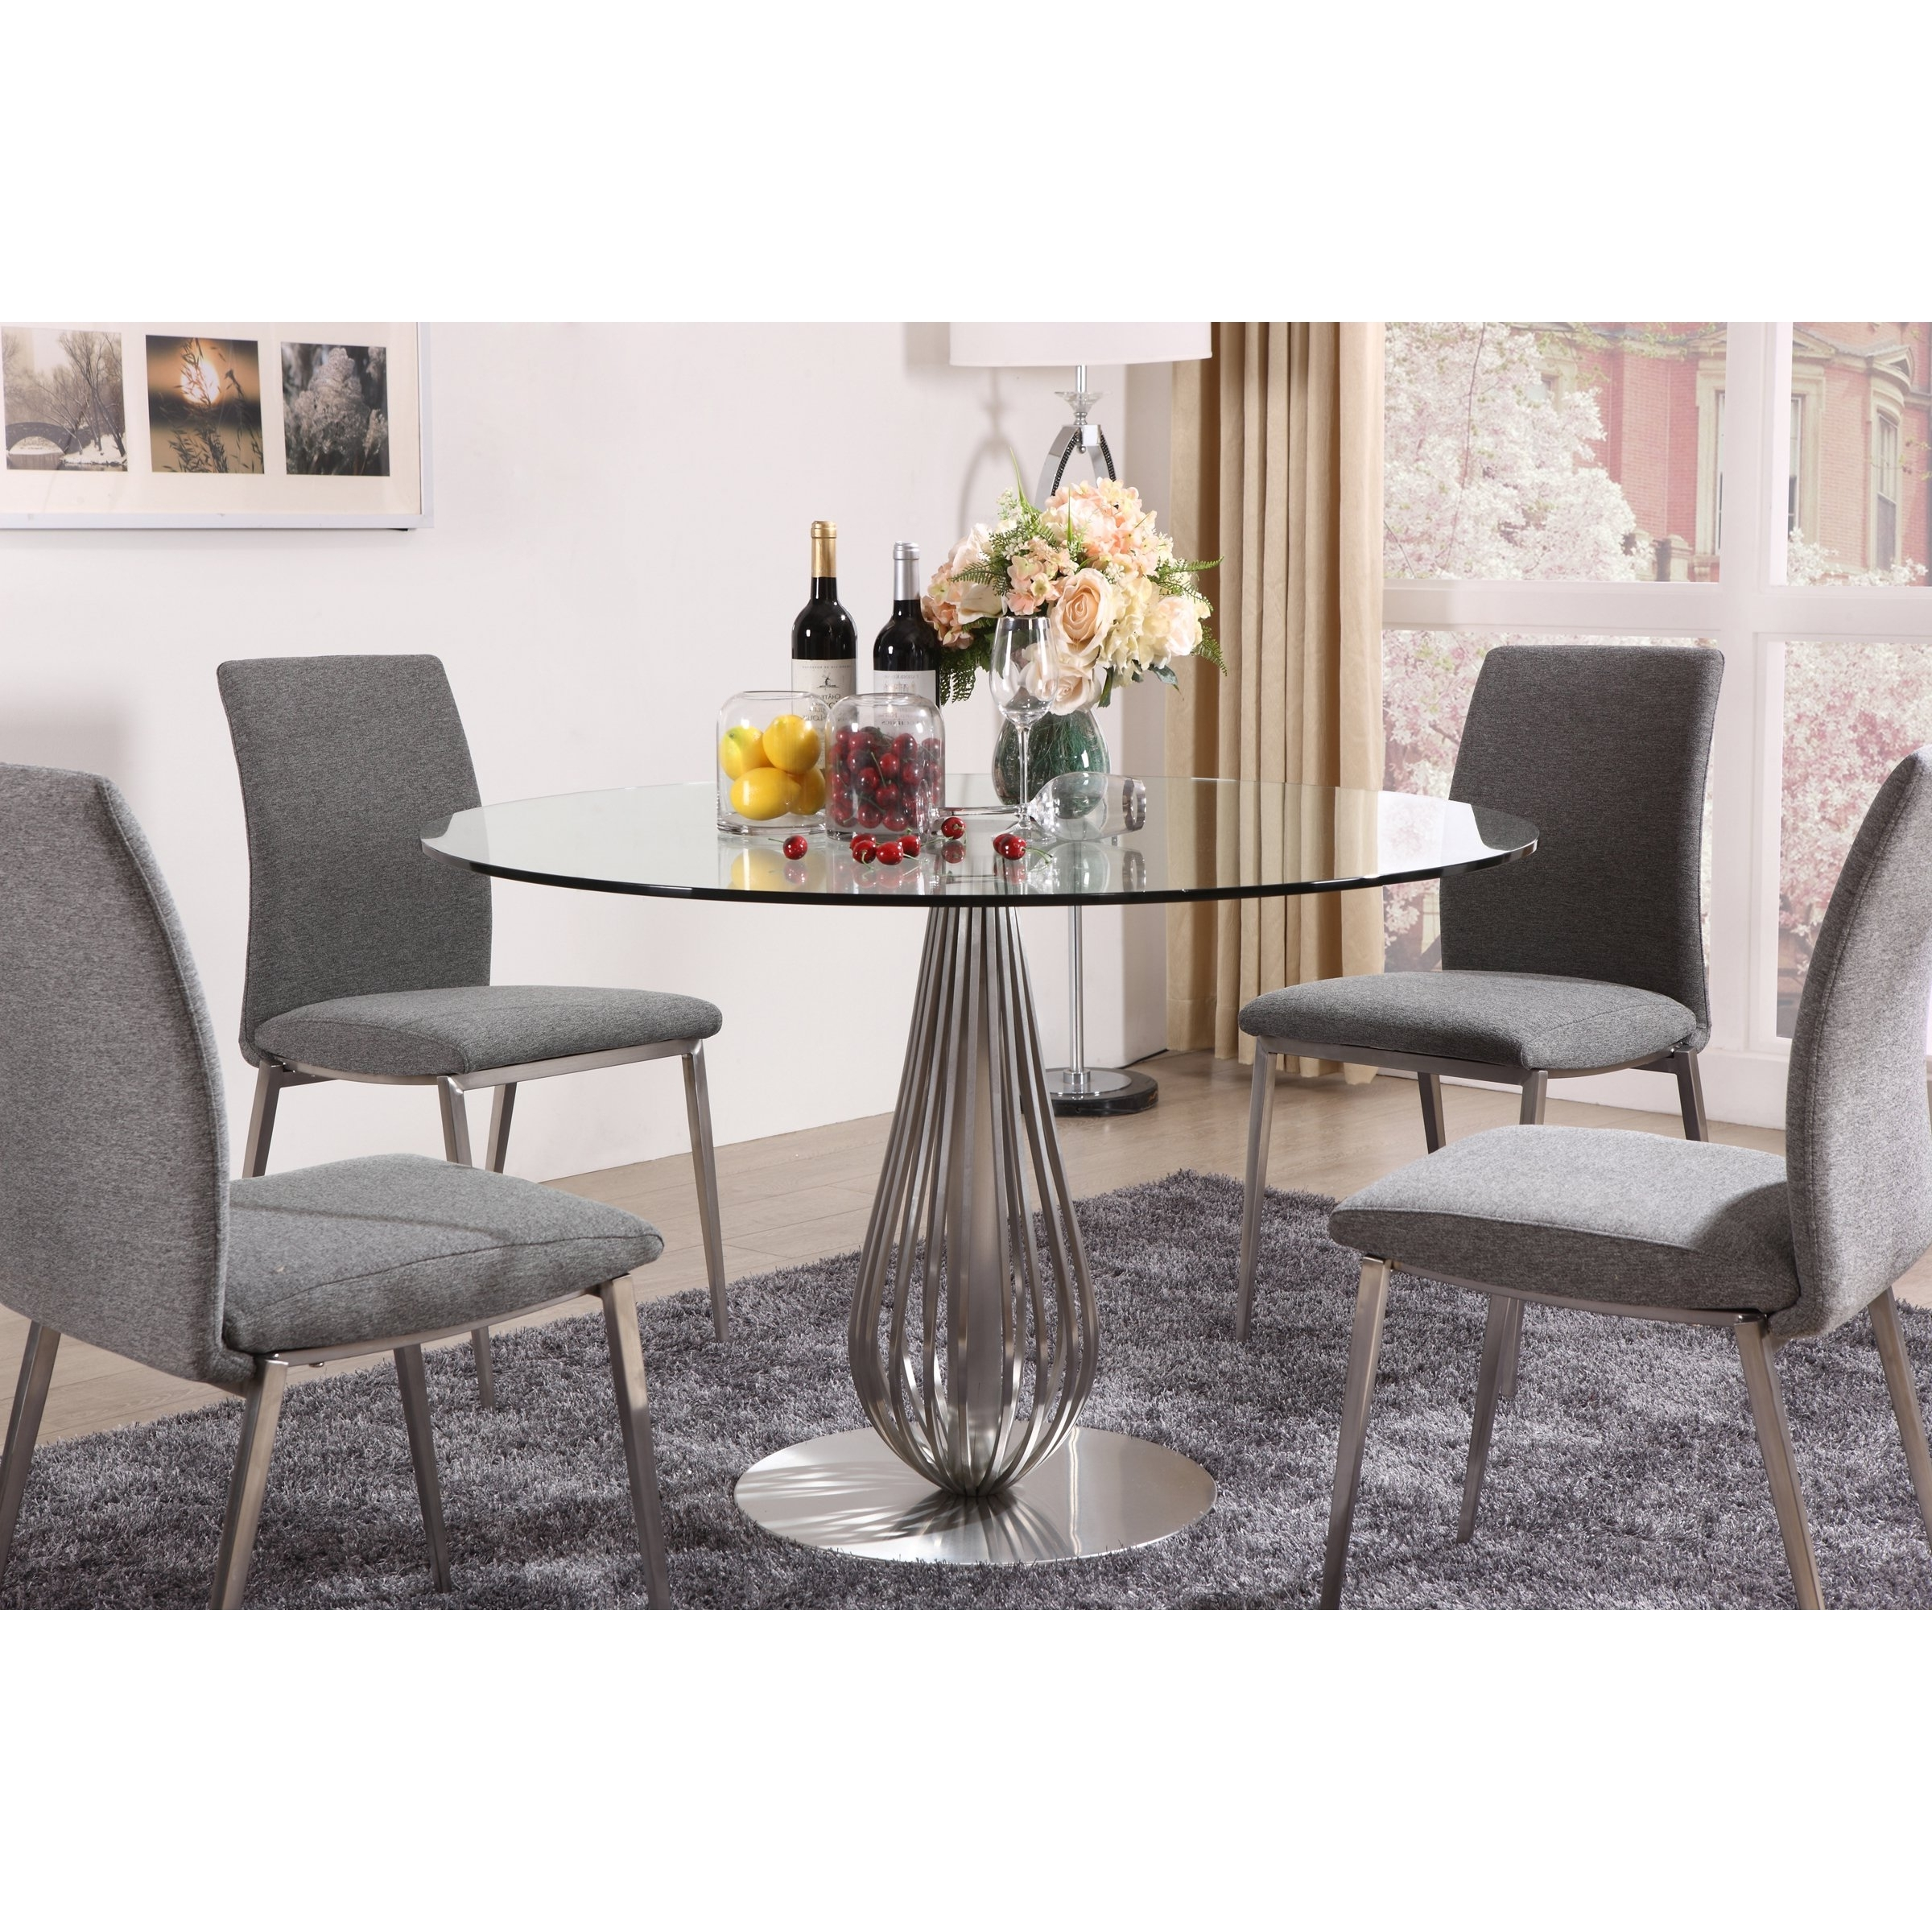 Shop Toscana Glass Round Dining Table – Silver – Free Shipping Today With Regard To Most Popular Toscana Dining Tables (View 9 of 25)